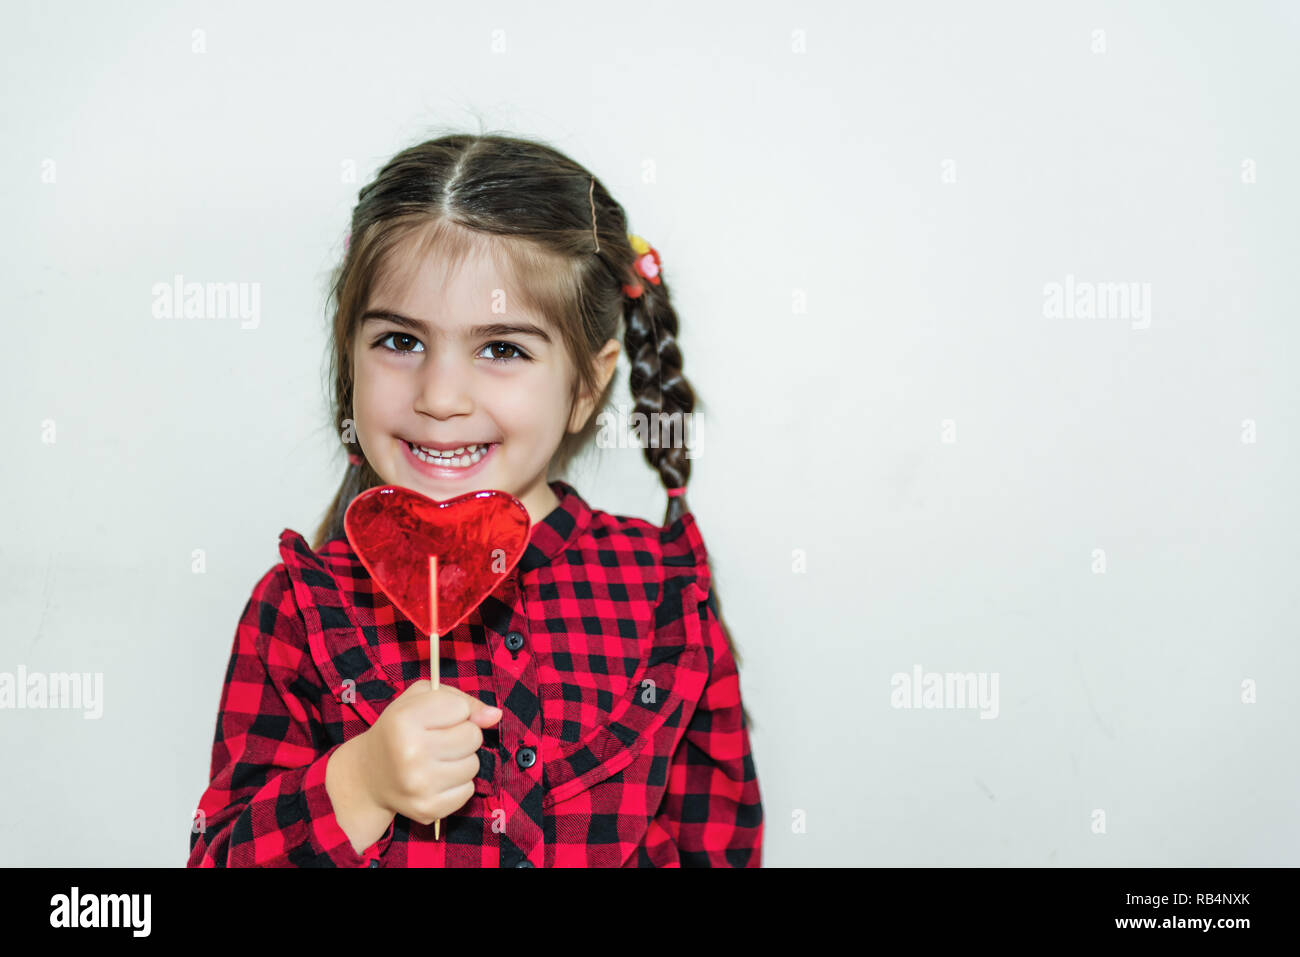 2227315850a25 Adorable lovely little girl holds lollipop in heart shaped red  candy.Holiday concept with isolated